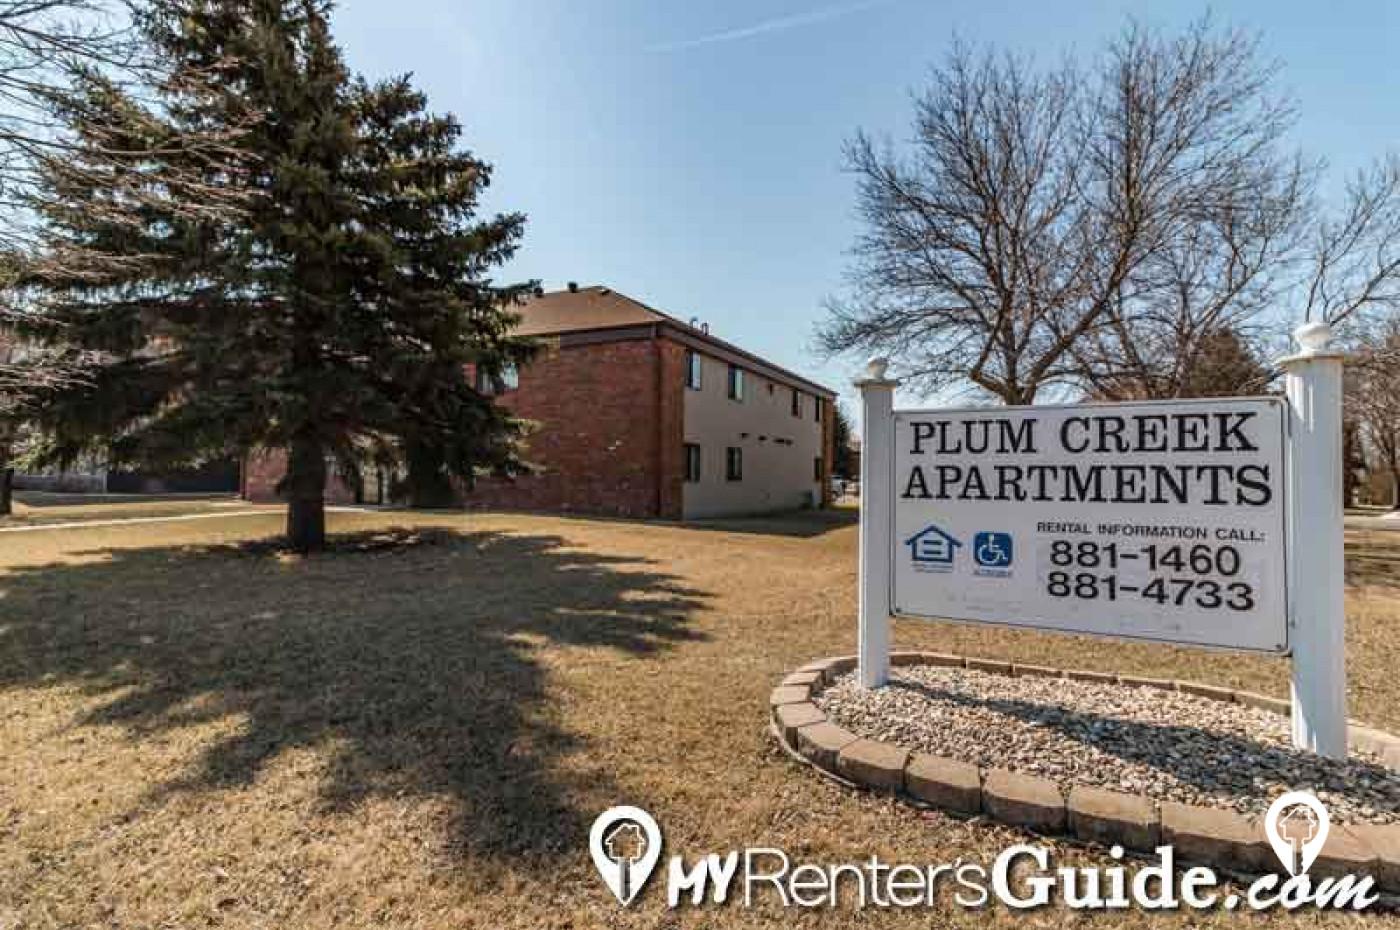 Plum Creek Apartment